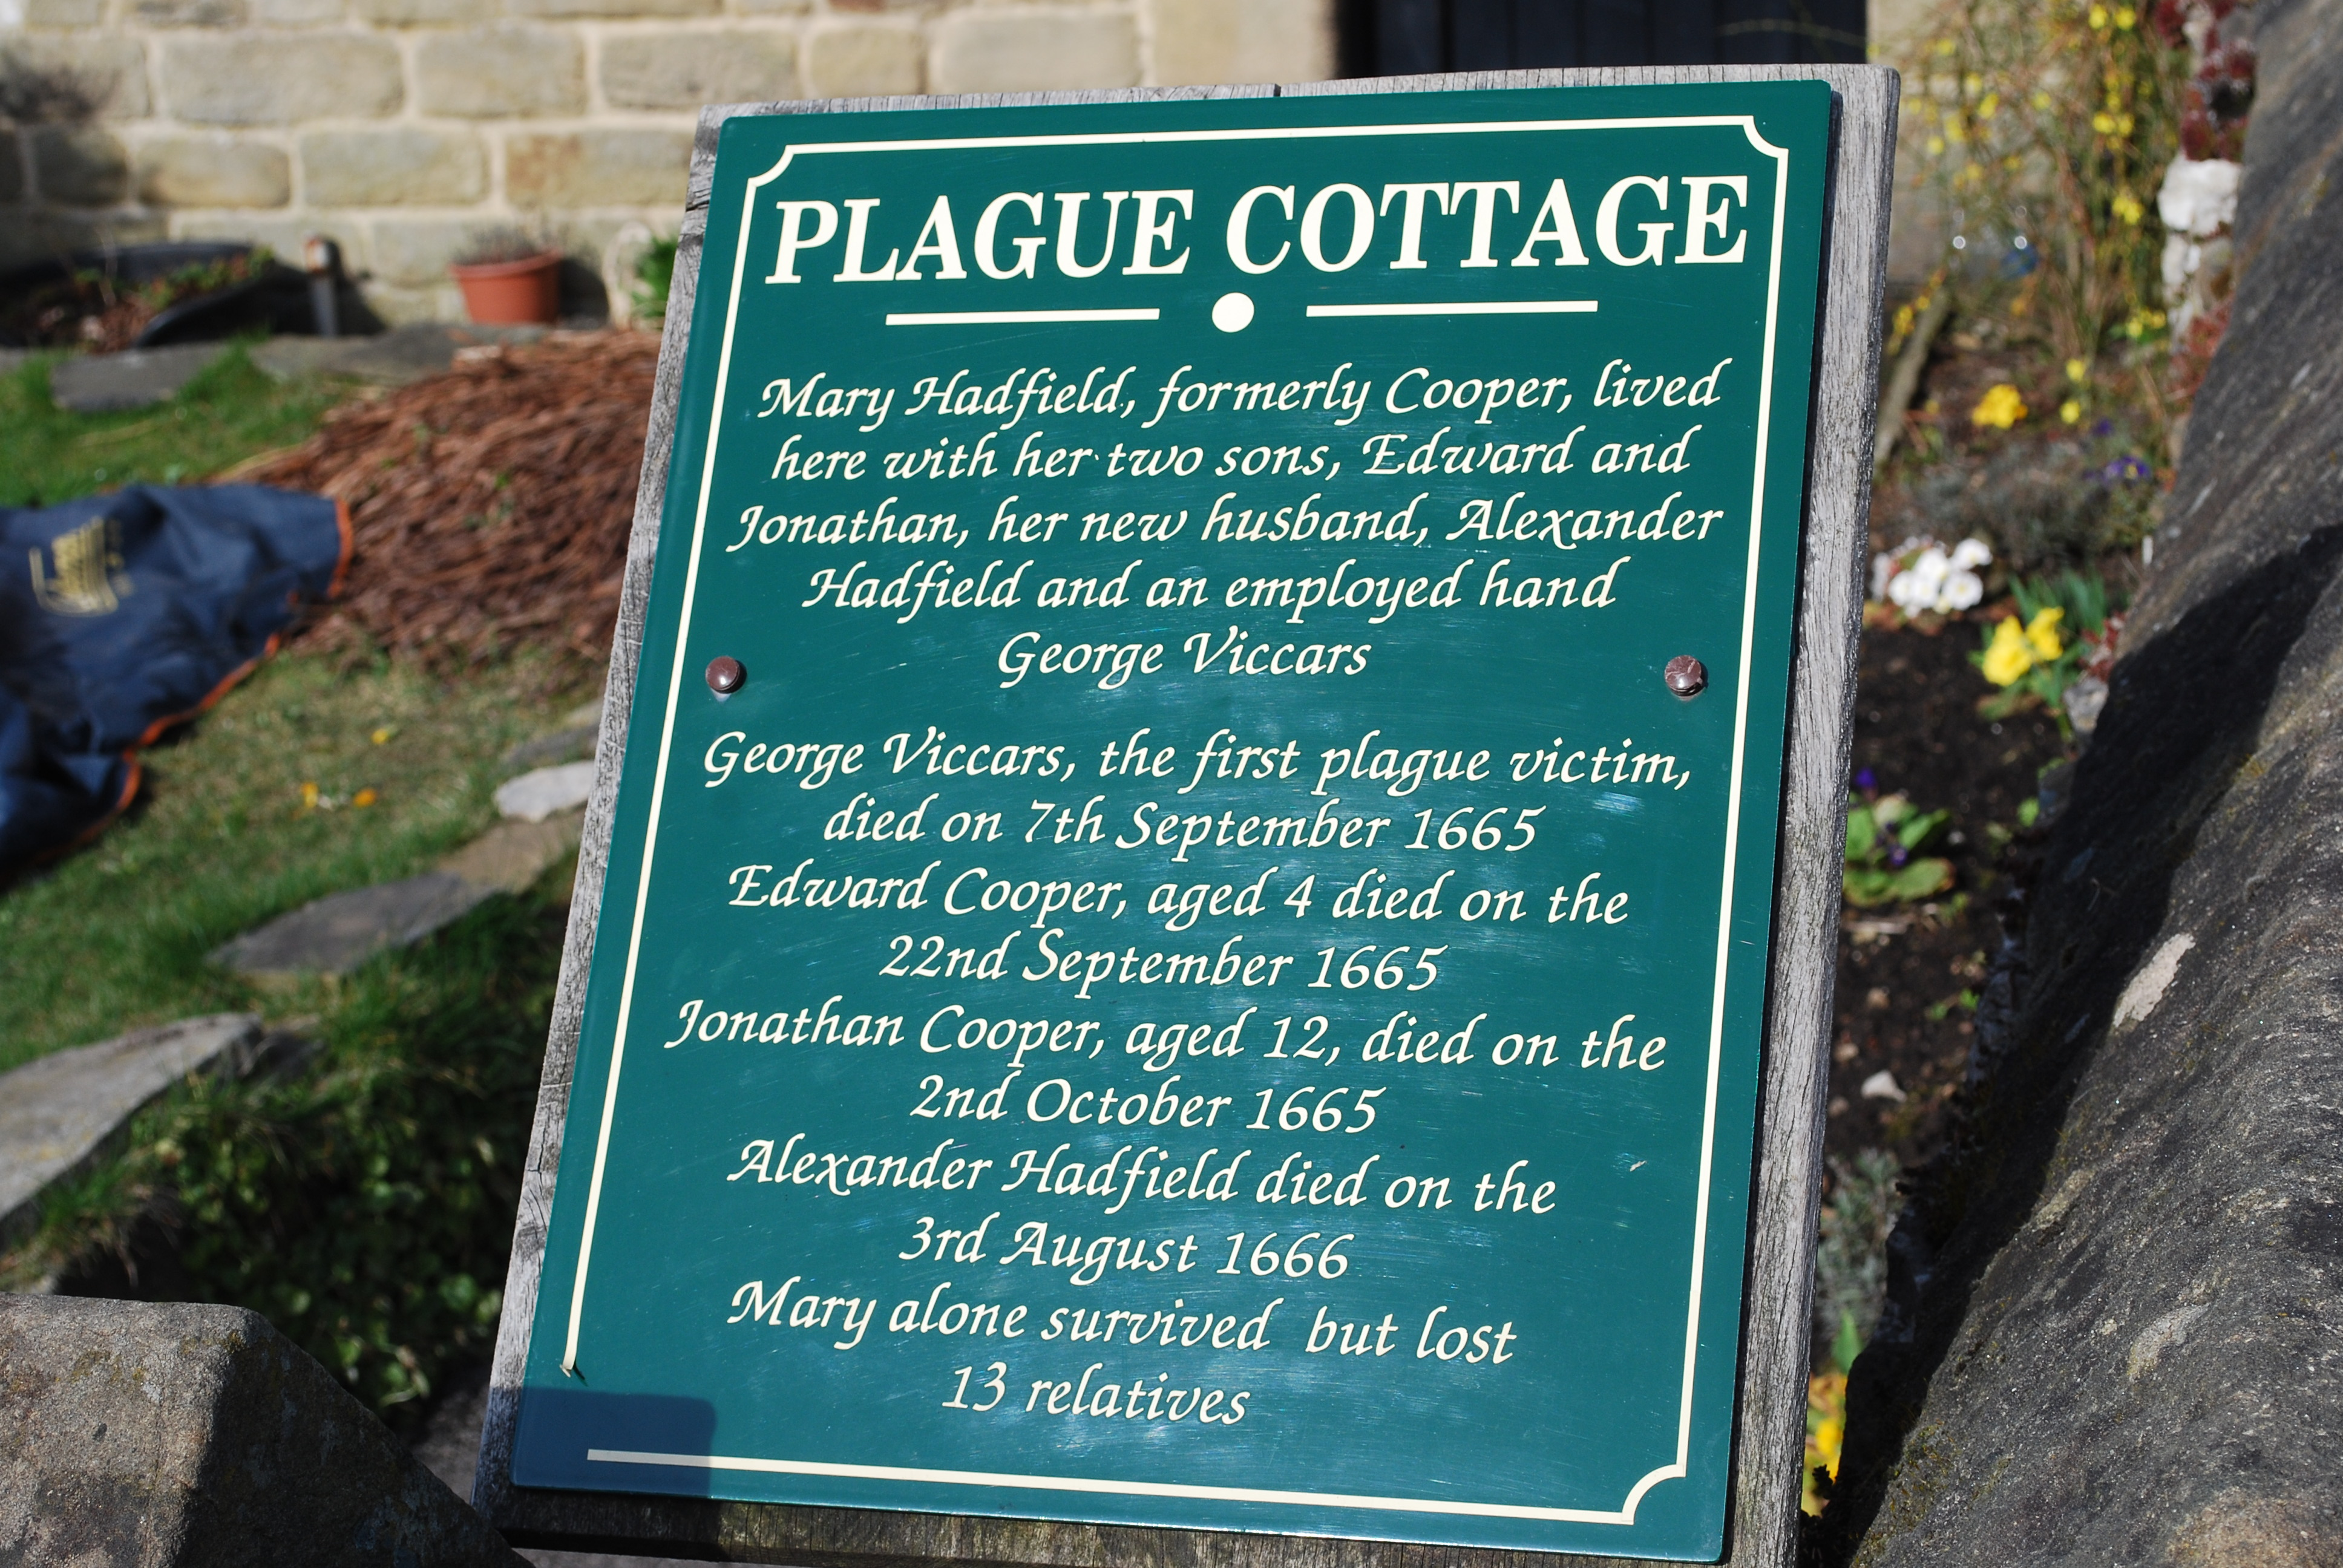 The London Plague of 1665